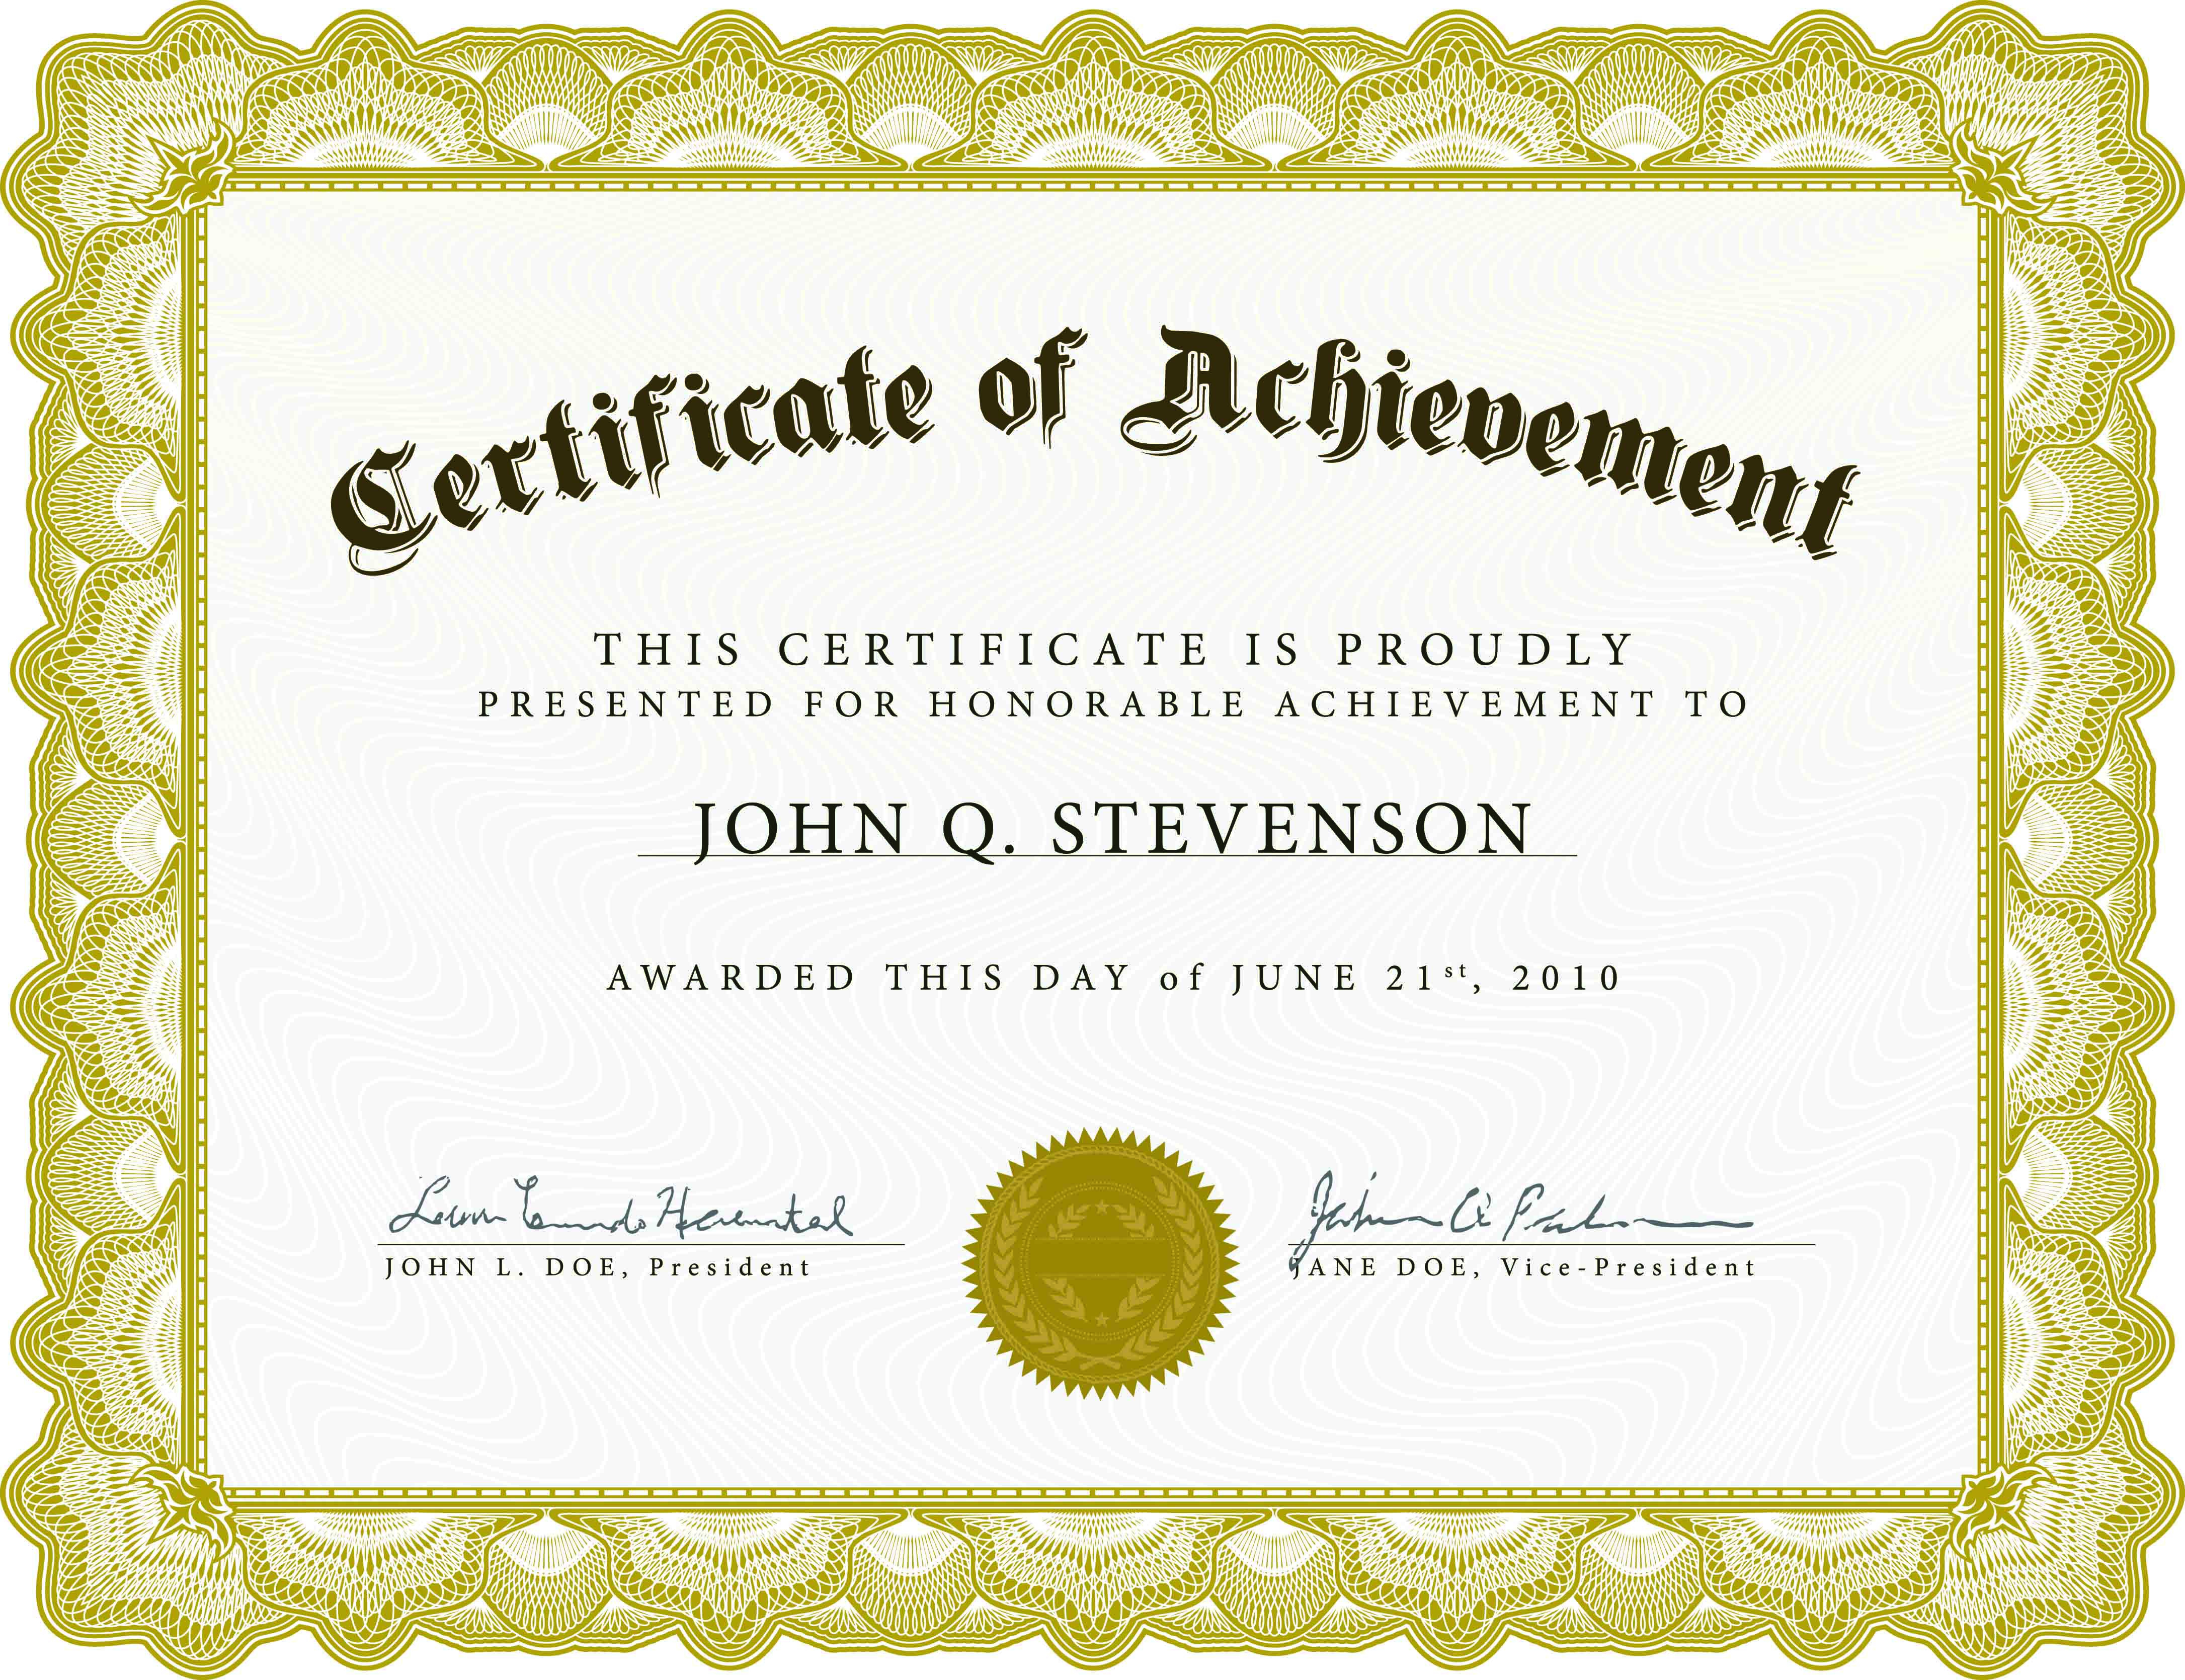 12 Certificate Templates Free Downloads Images - Completion With Regard To Certificate Templates For Word Free Downloads